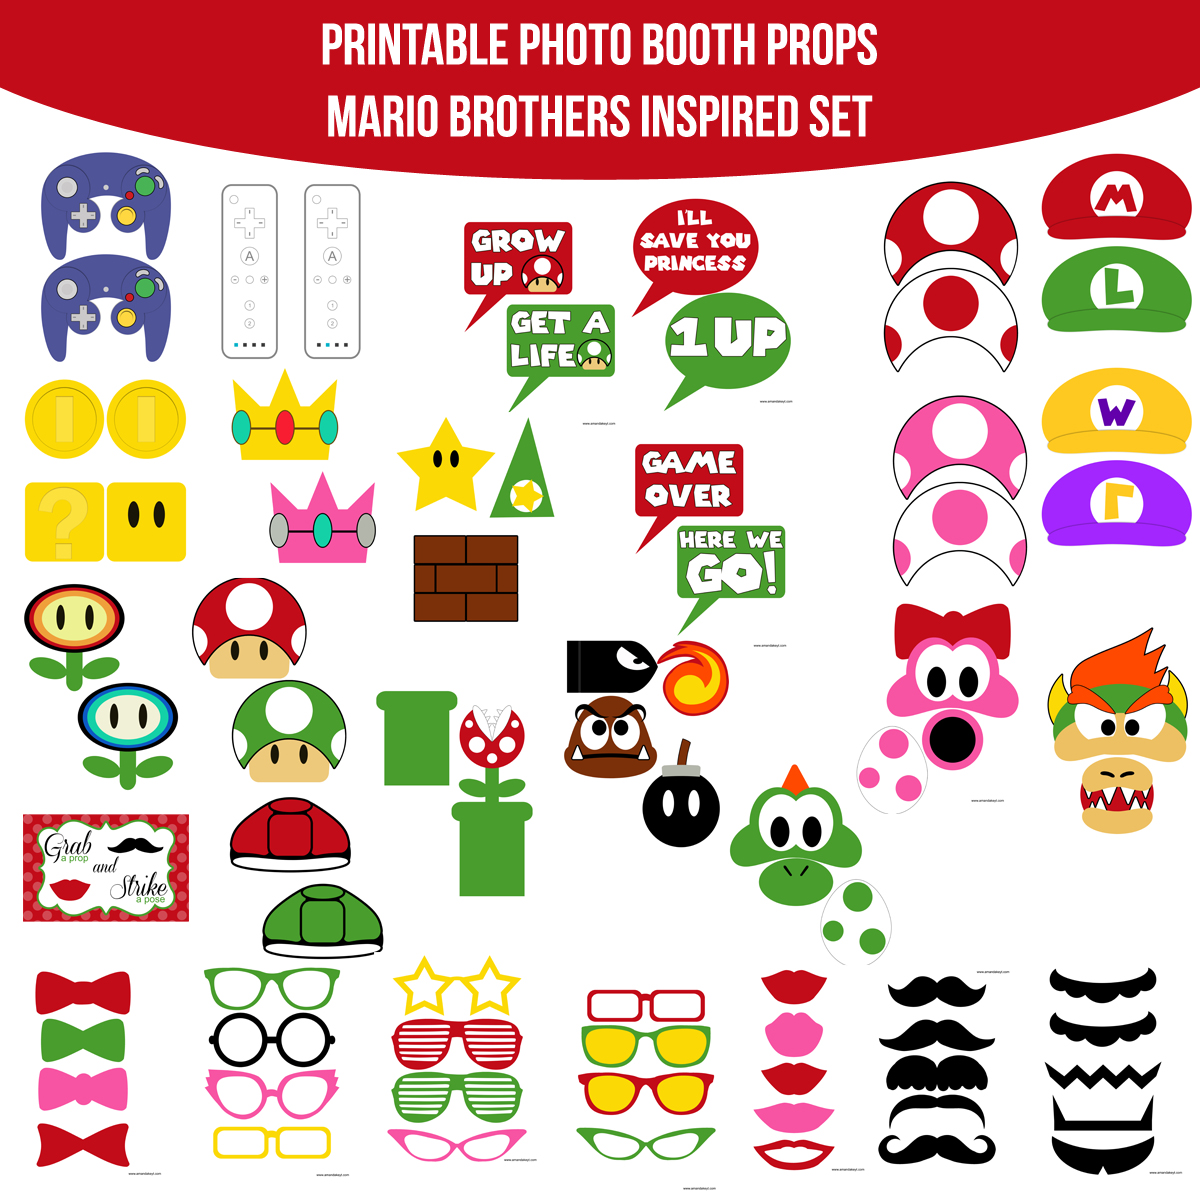 See the Set - To View The Whole Video Game Mario Super Mario Bros Inspired Printable Photo Booth Prop Set Click Here